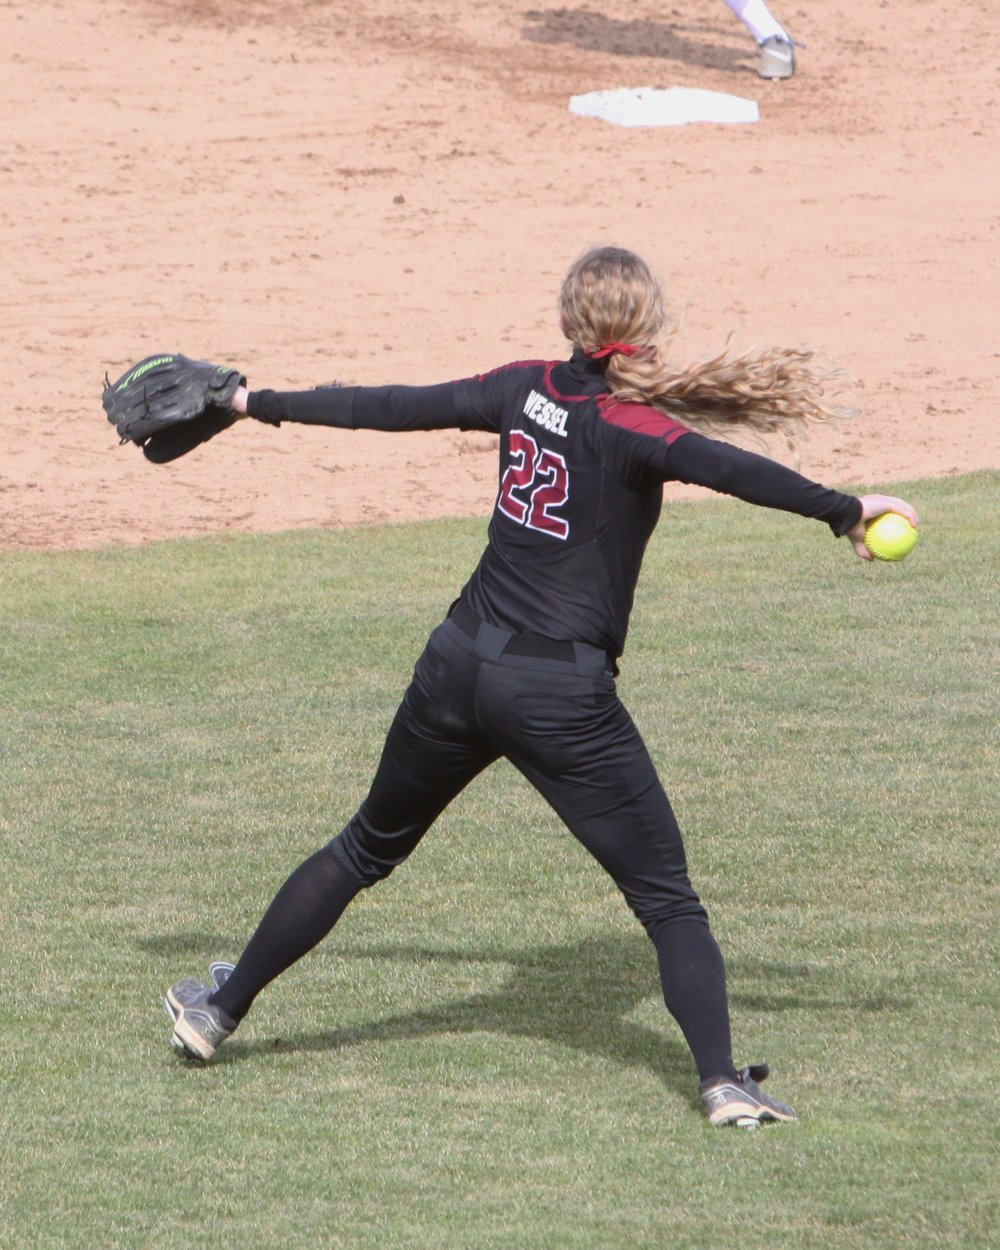 Shannon Wessel, '17, has played all over the field during her time at Whitworth. Wessel played second base as a freshman and sophomore before moving to the outfield as an upperclassman. (Zoe Koch | Photographer)